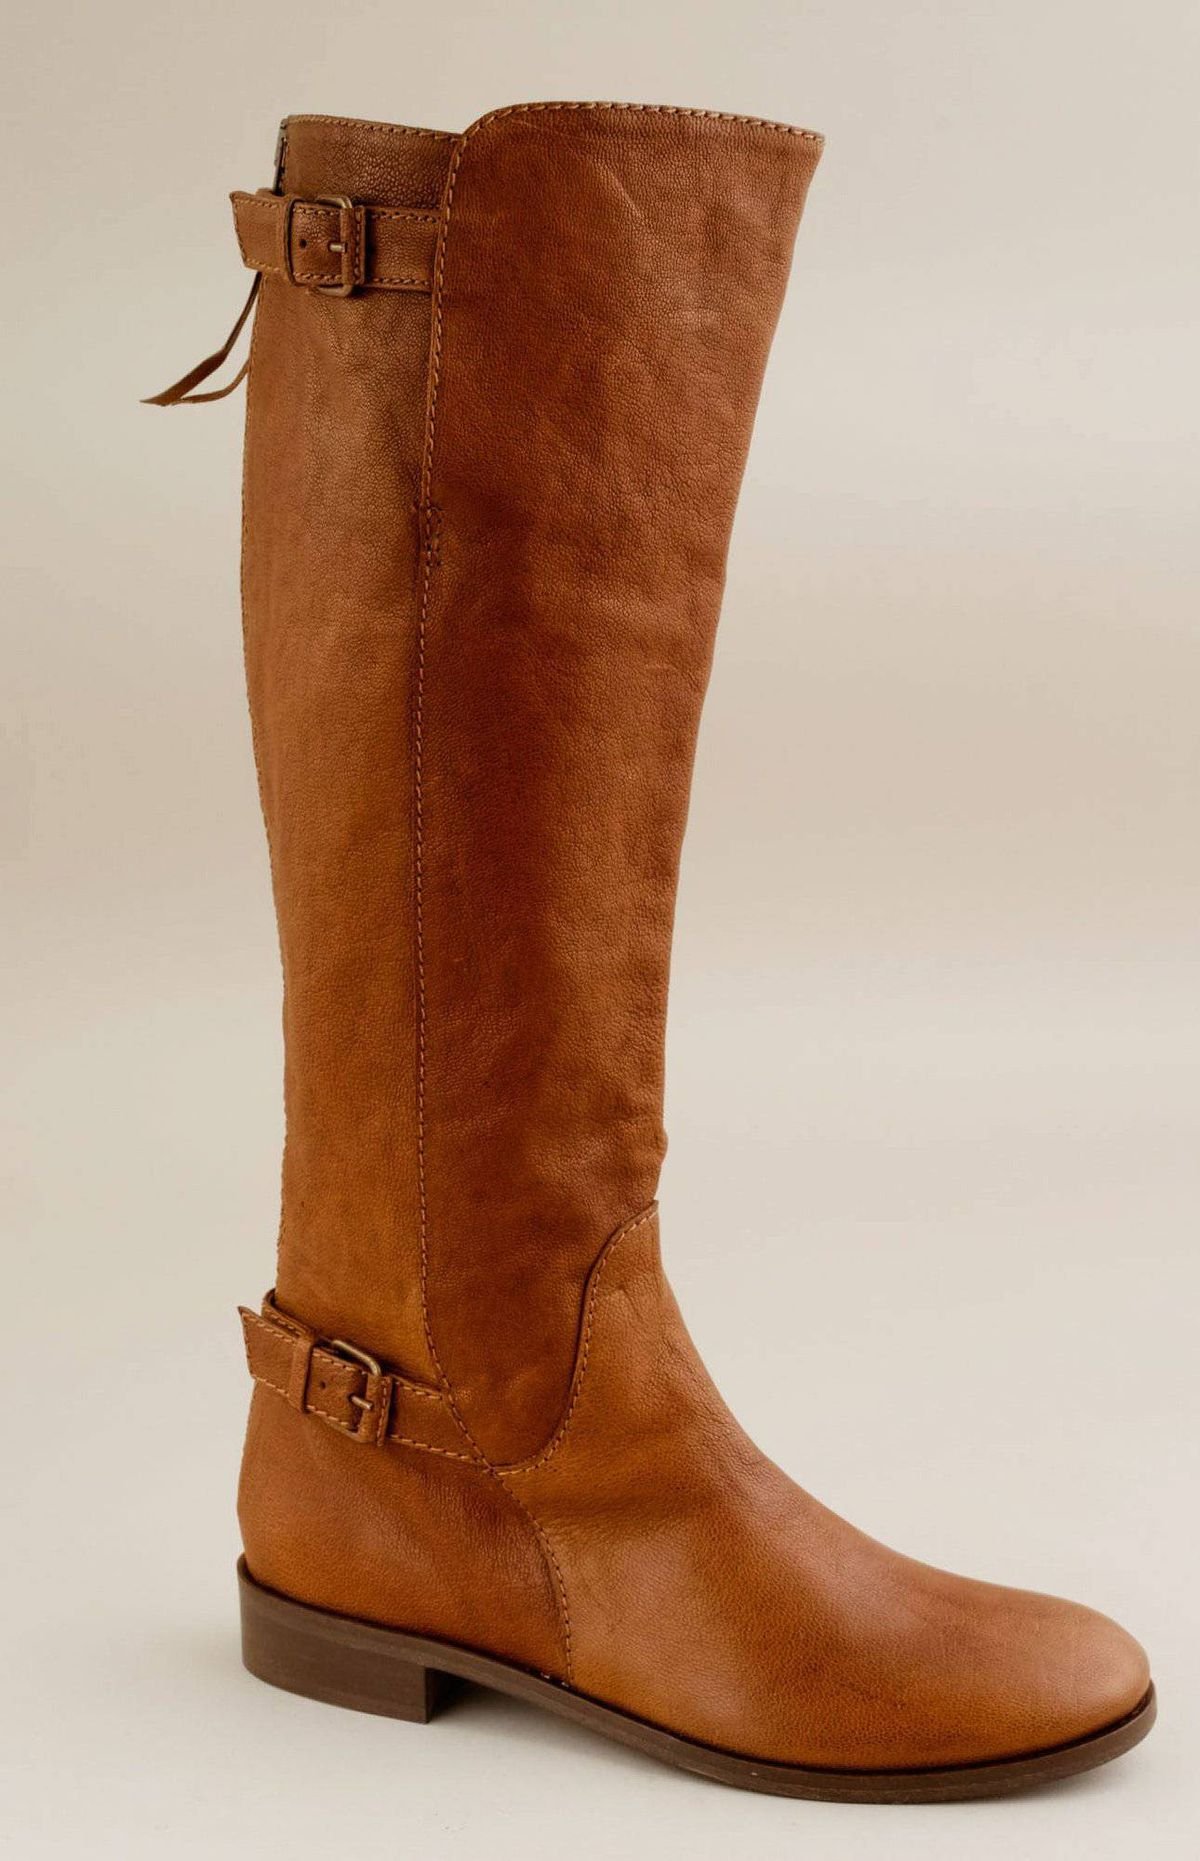 Boot-iful Whether you wear them riding in the mountains of Andalucia or on a ramble through the streets of Madrid, J. Crew's Emmett boots will keep you going all day. The equestrian-inspired design includes a wrap-around ankle strap, antiqued gunmetal-finish brass buckles and a heel-to-knee zip that stretches up the calf. $378; jcrew.com